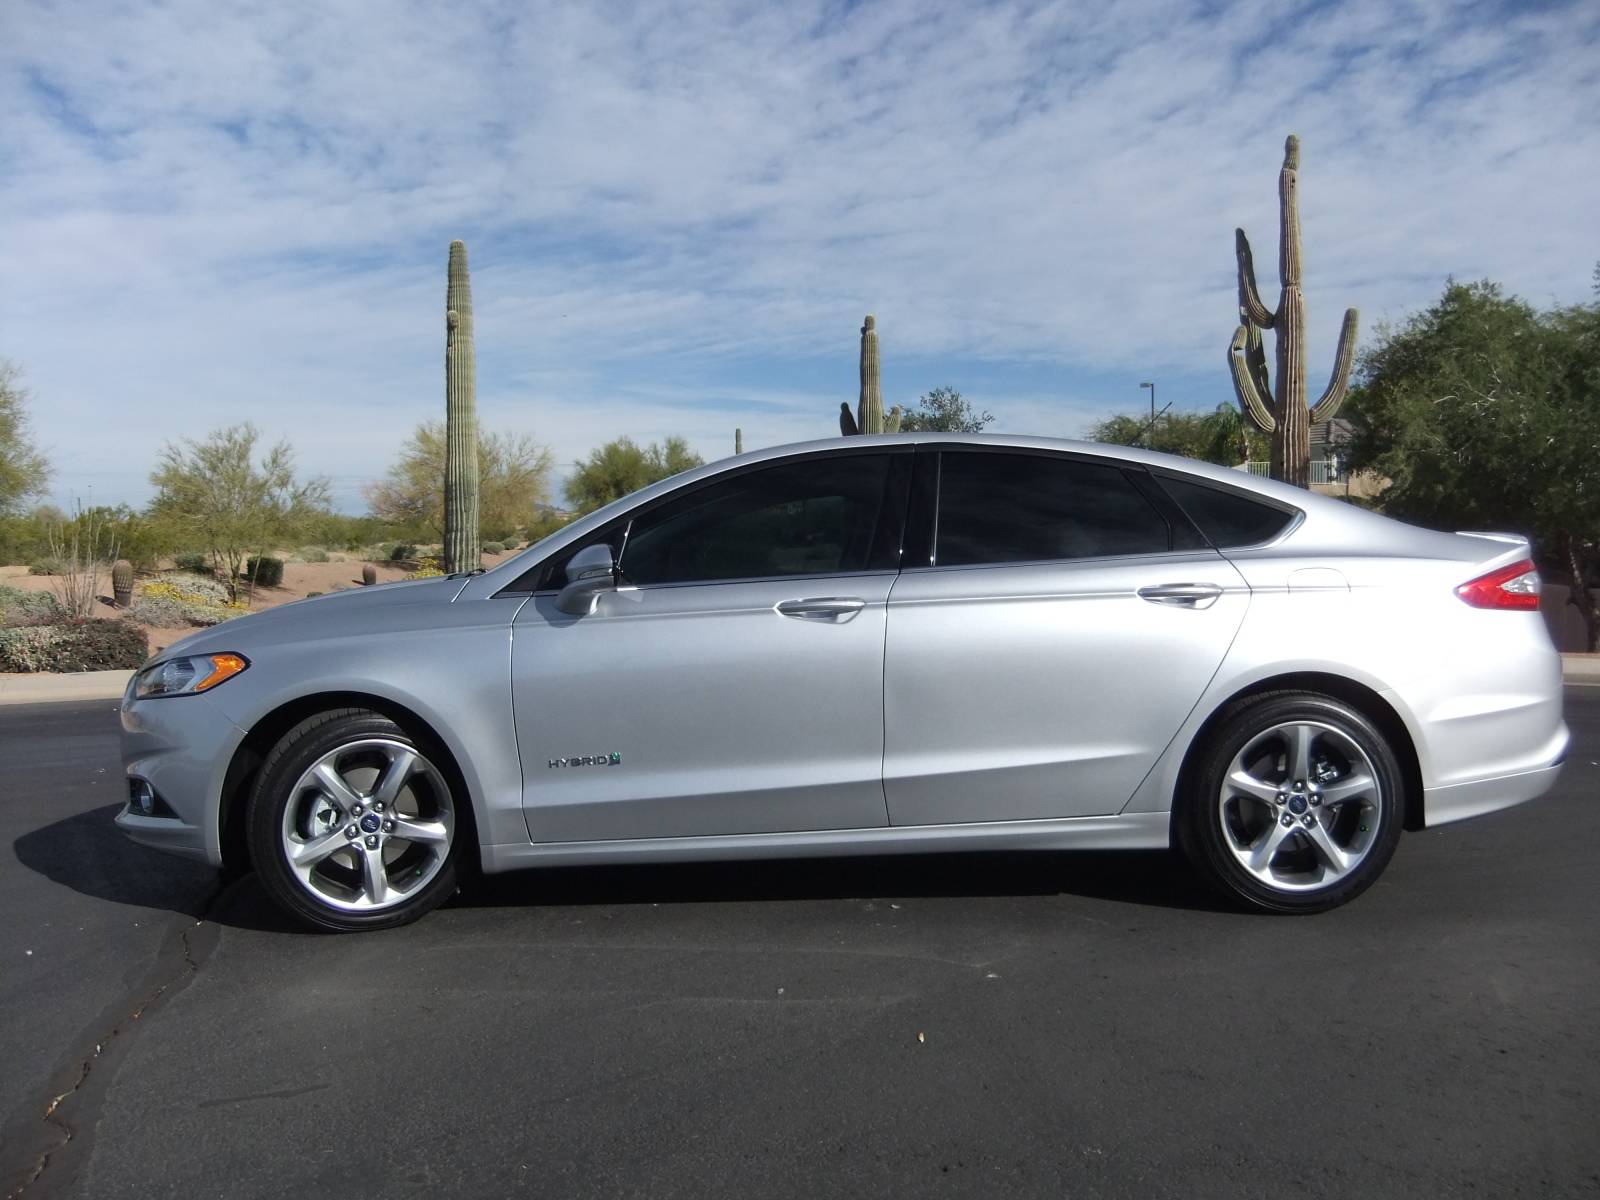 White Ford Fusion Tinted Windows >> Ford Fusion Sport Silver Tinted Windows Pictures to Pin on Pinterest - ThePinsta